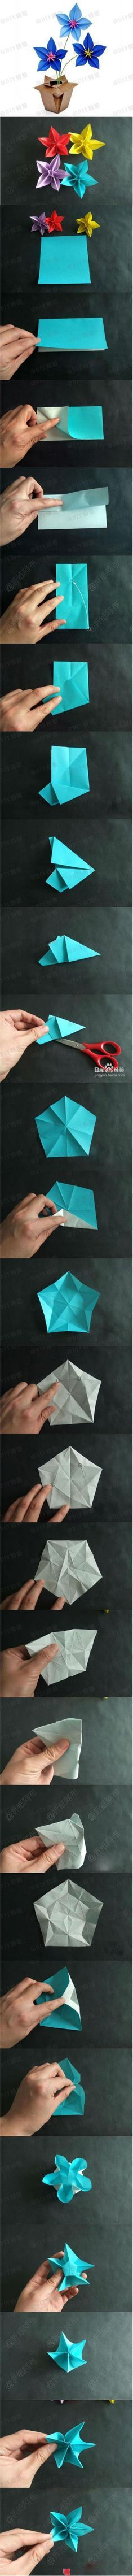 More origami flowers! yes yes